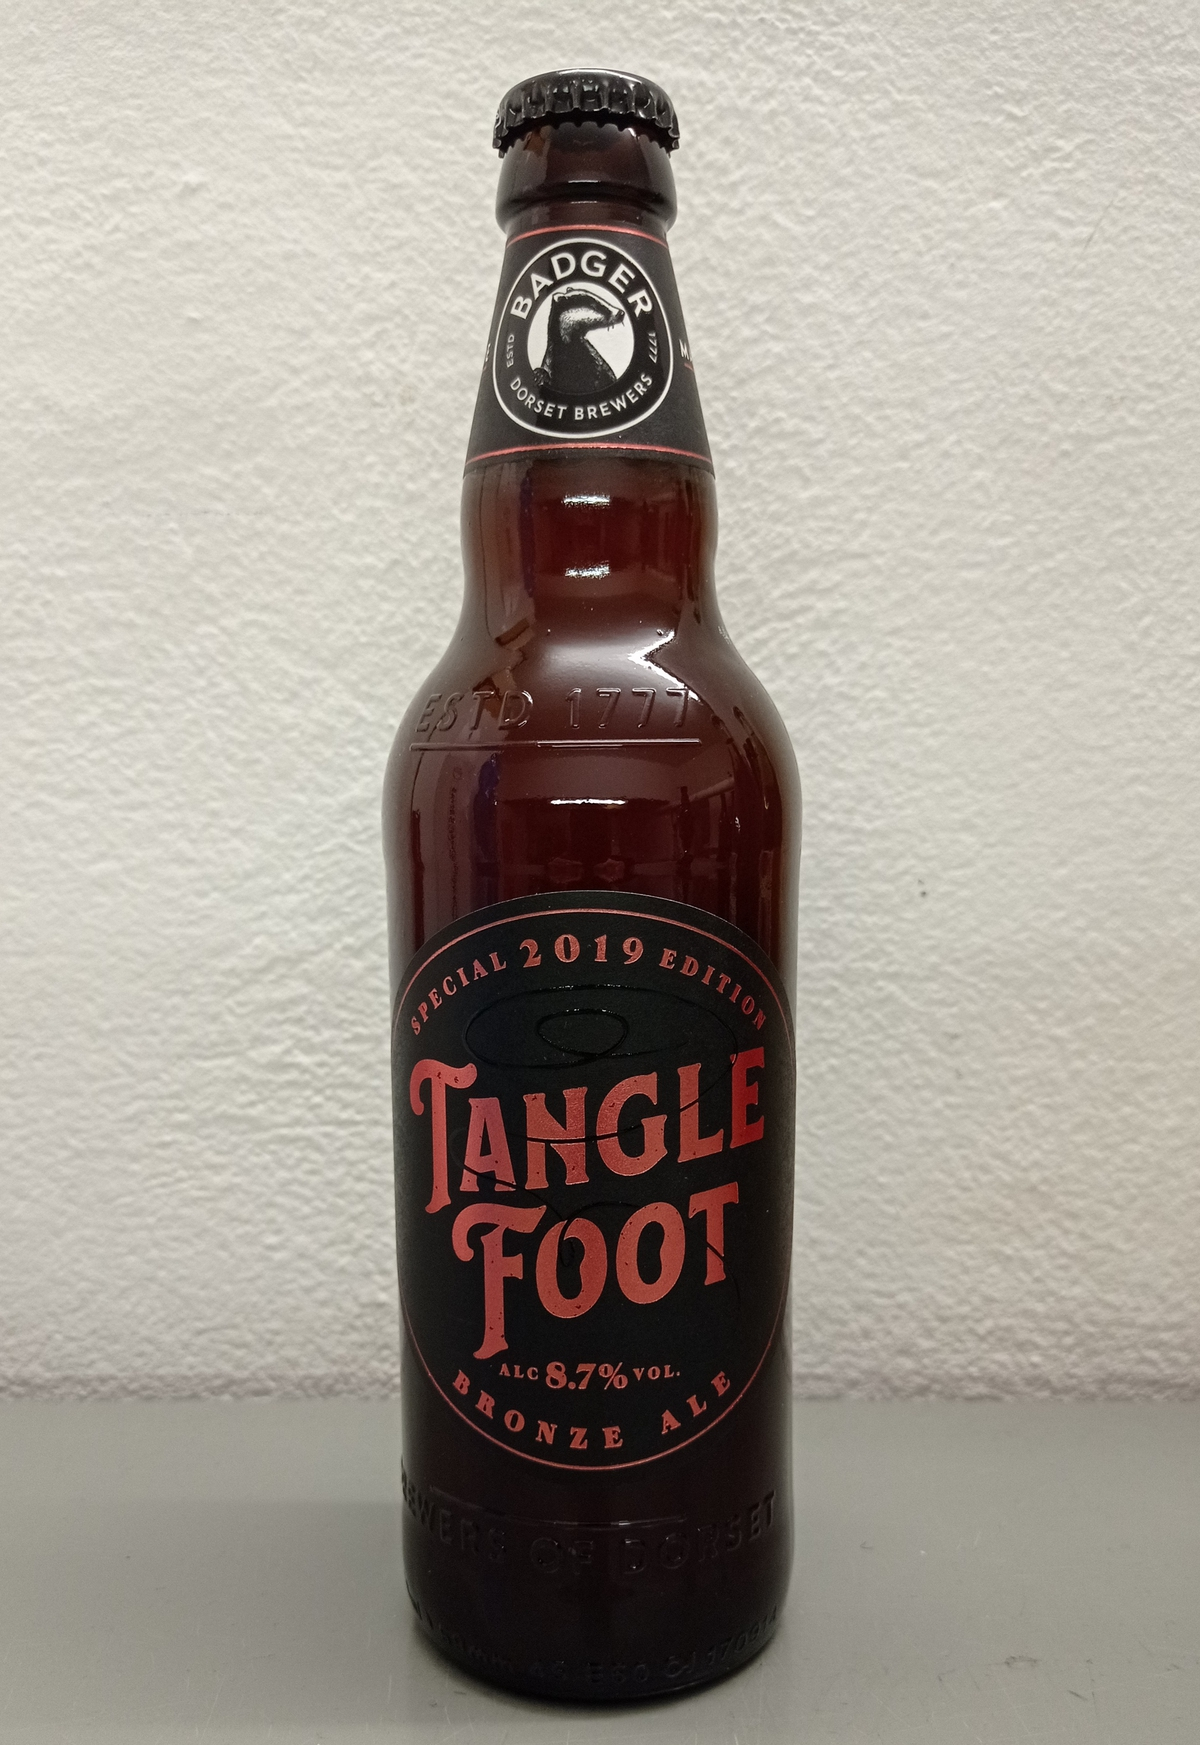 Tangle Foot - Special Edition 2019